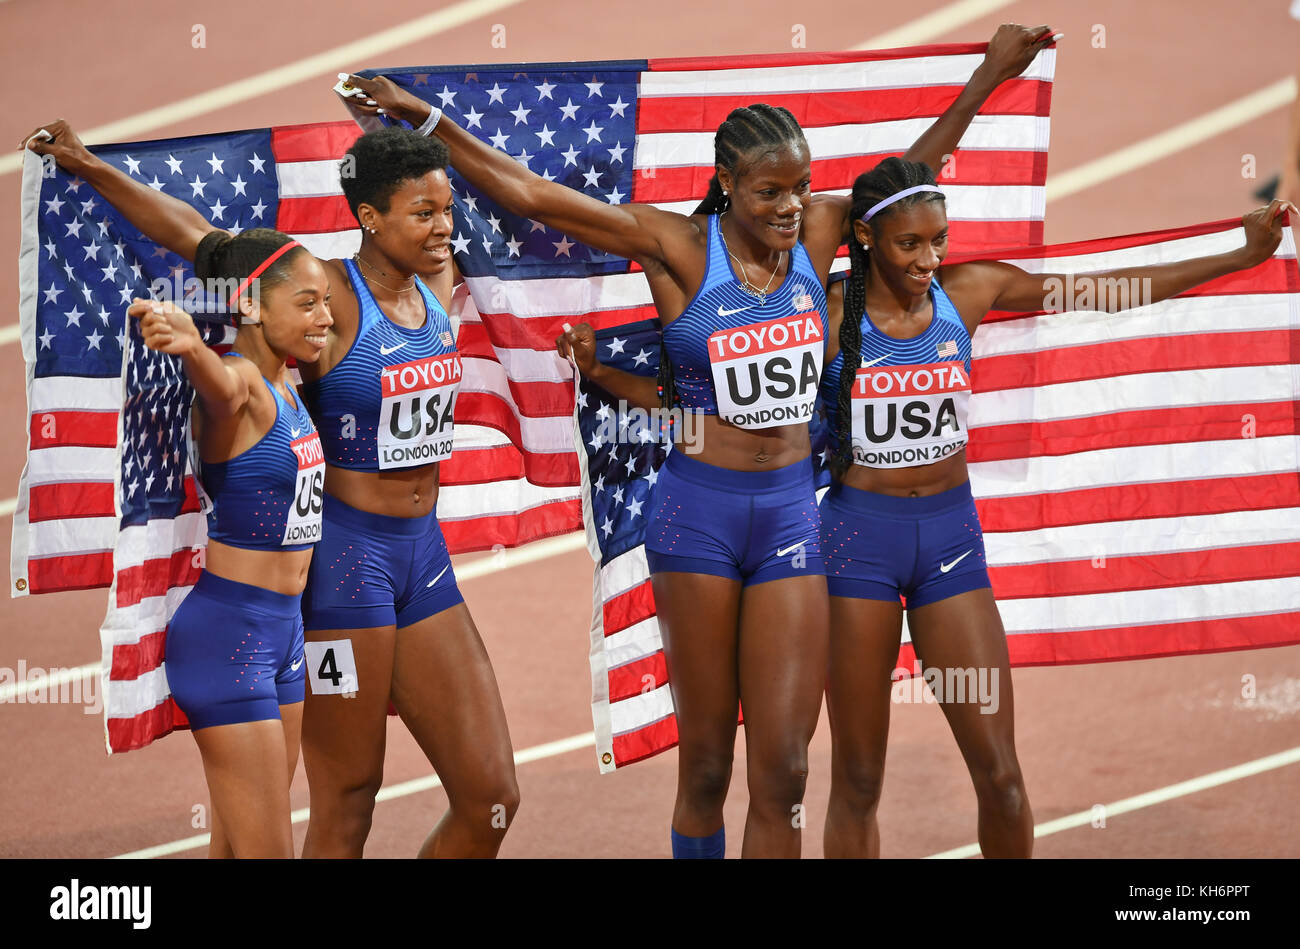 USA Team - 4x400 relays Gold Medal - IAAF World Championships - London 2017 - Stock Image